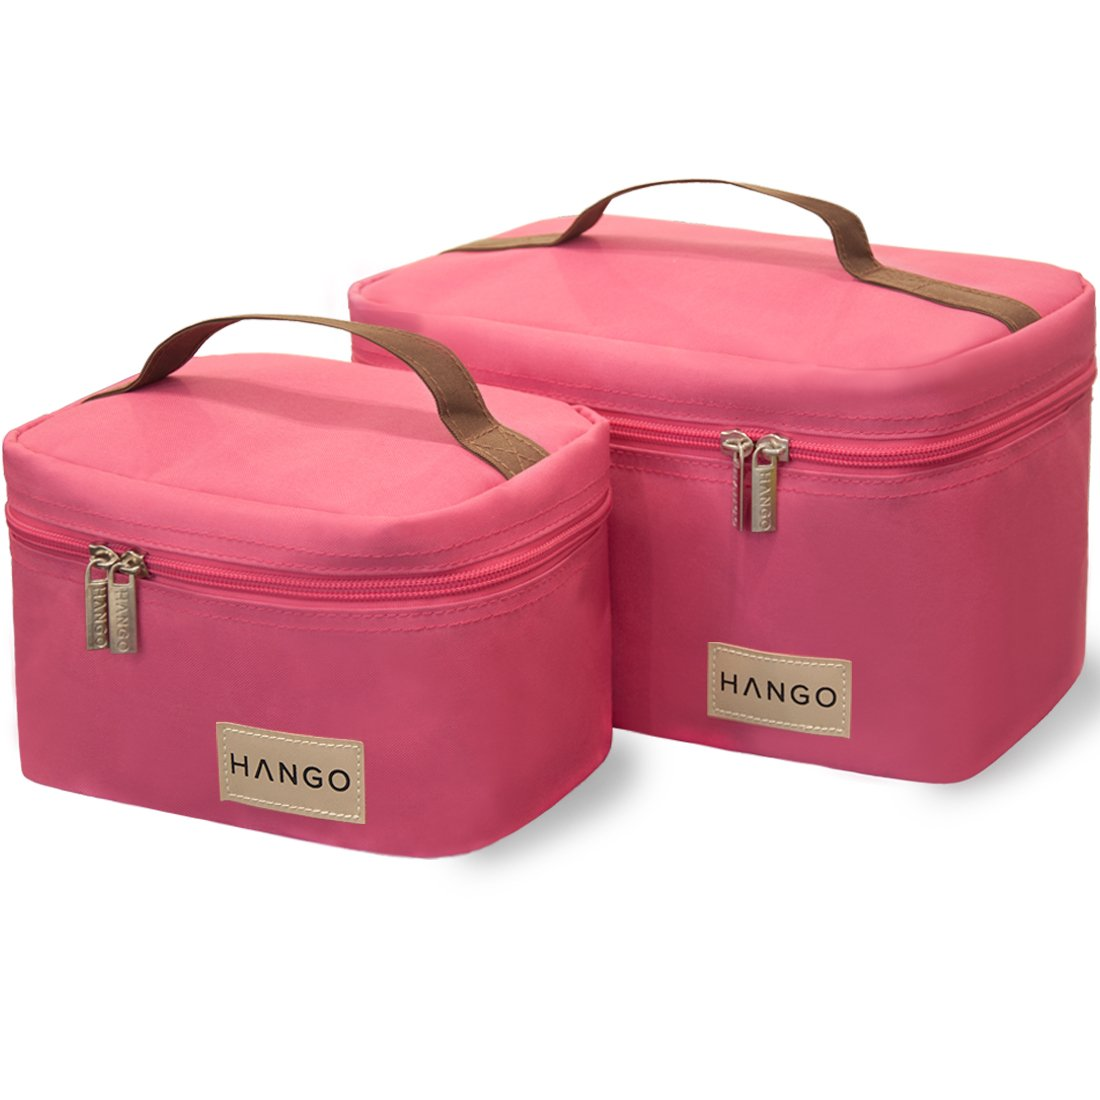 Hango Adult Lunch Box Insulated Lunch Bag Large Cooler Tote Bag (Set of 2 Sizes) For Men and Women, Black Attican